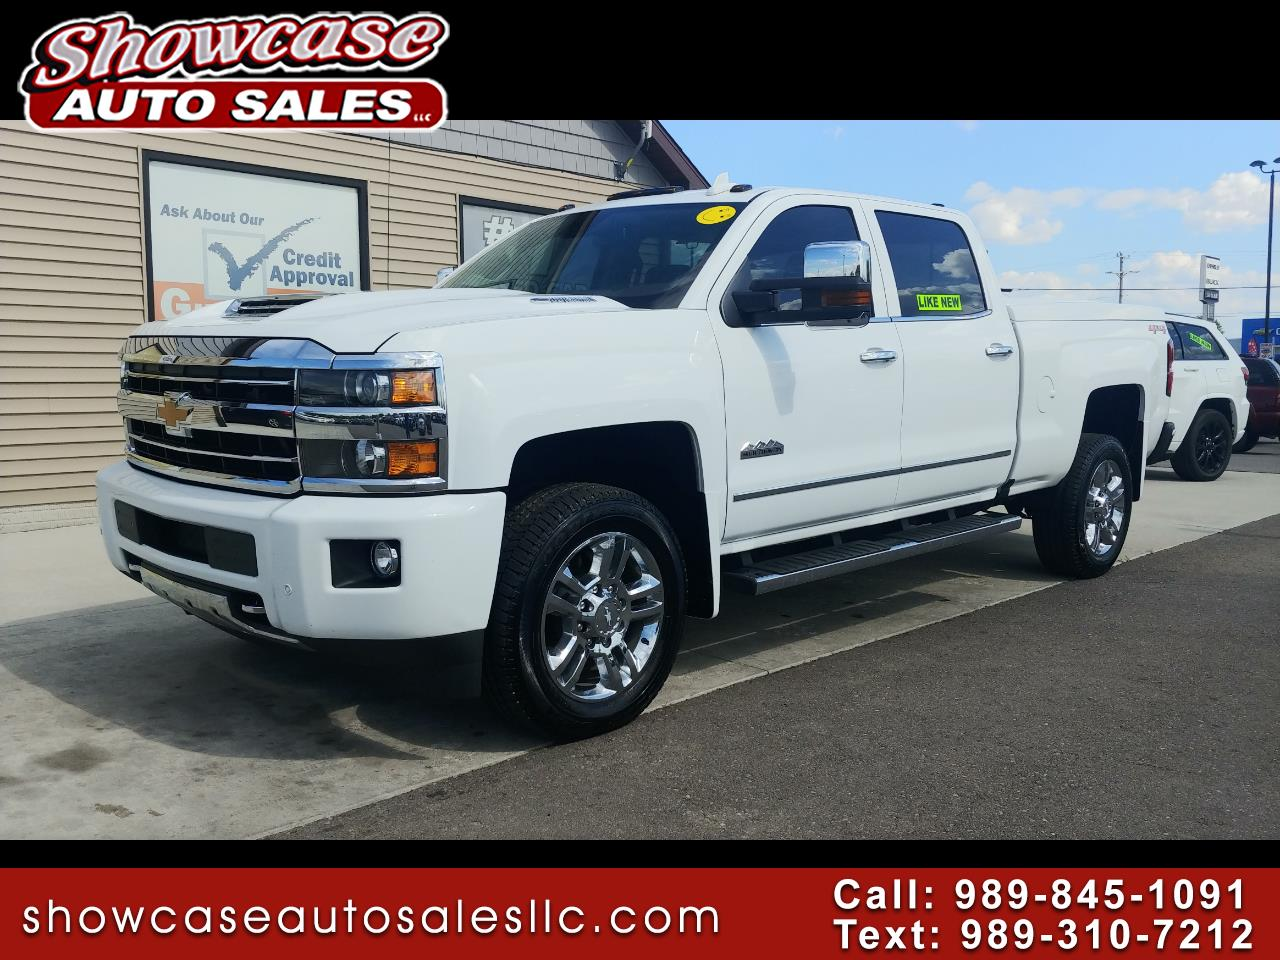 "2018 Chevrolet Silverado 2500HD 4WD Crew Cab 153.7"" High Country"